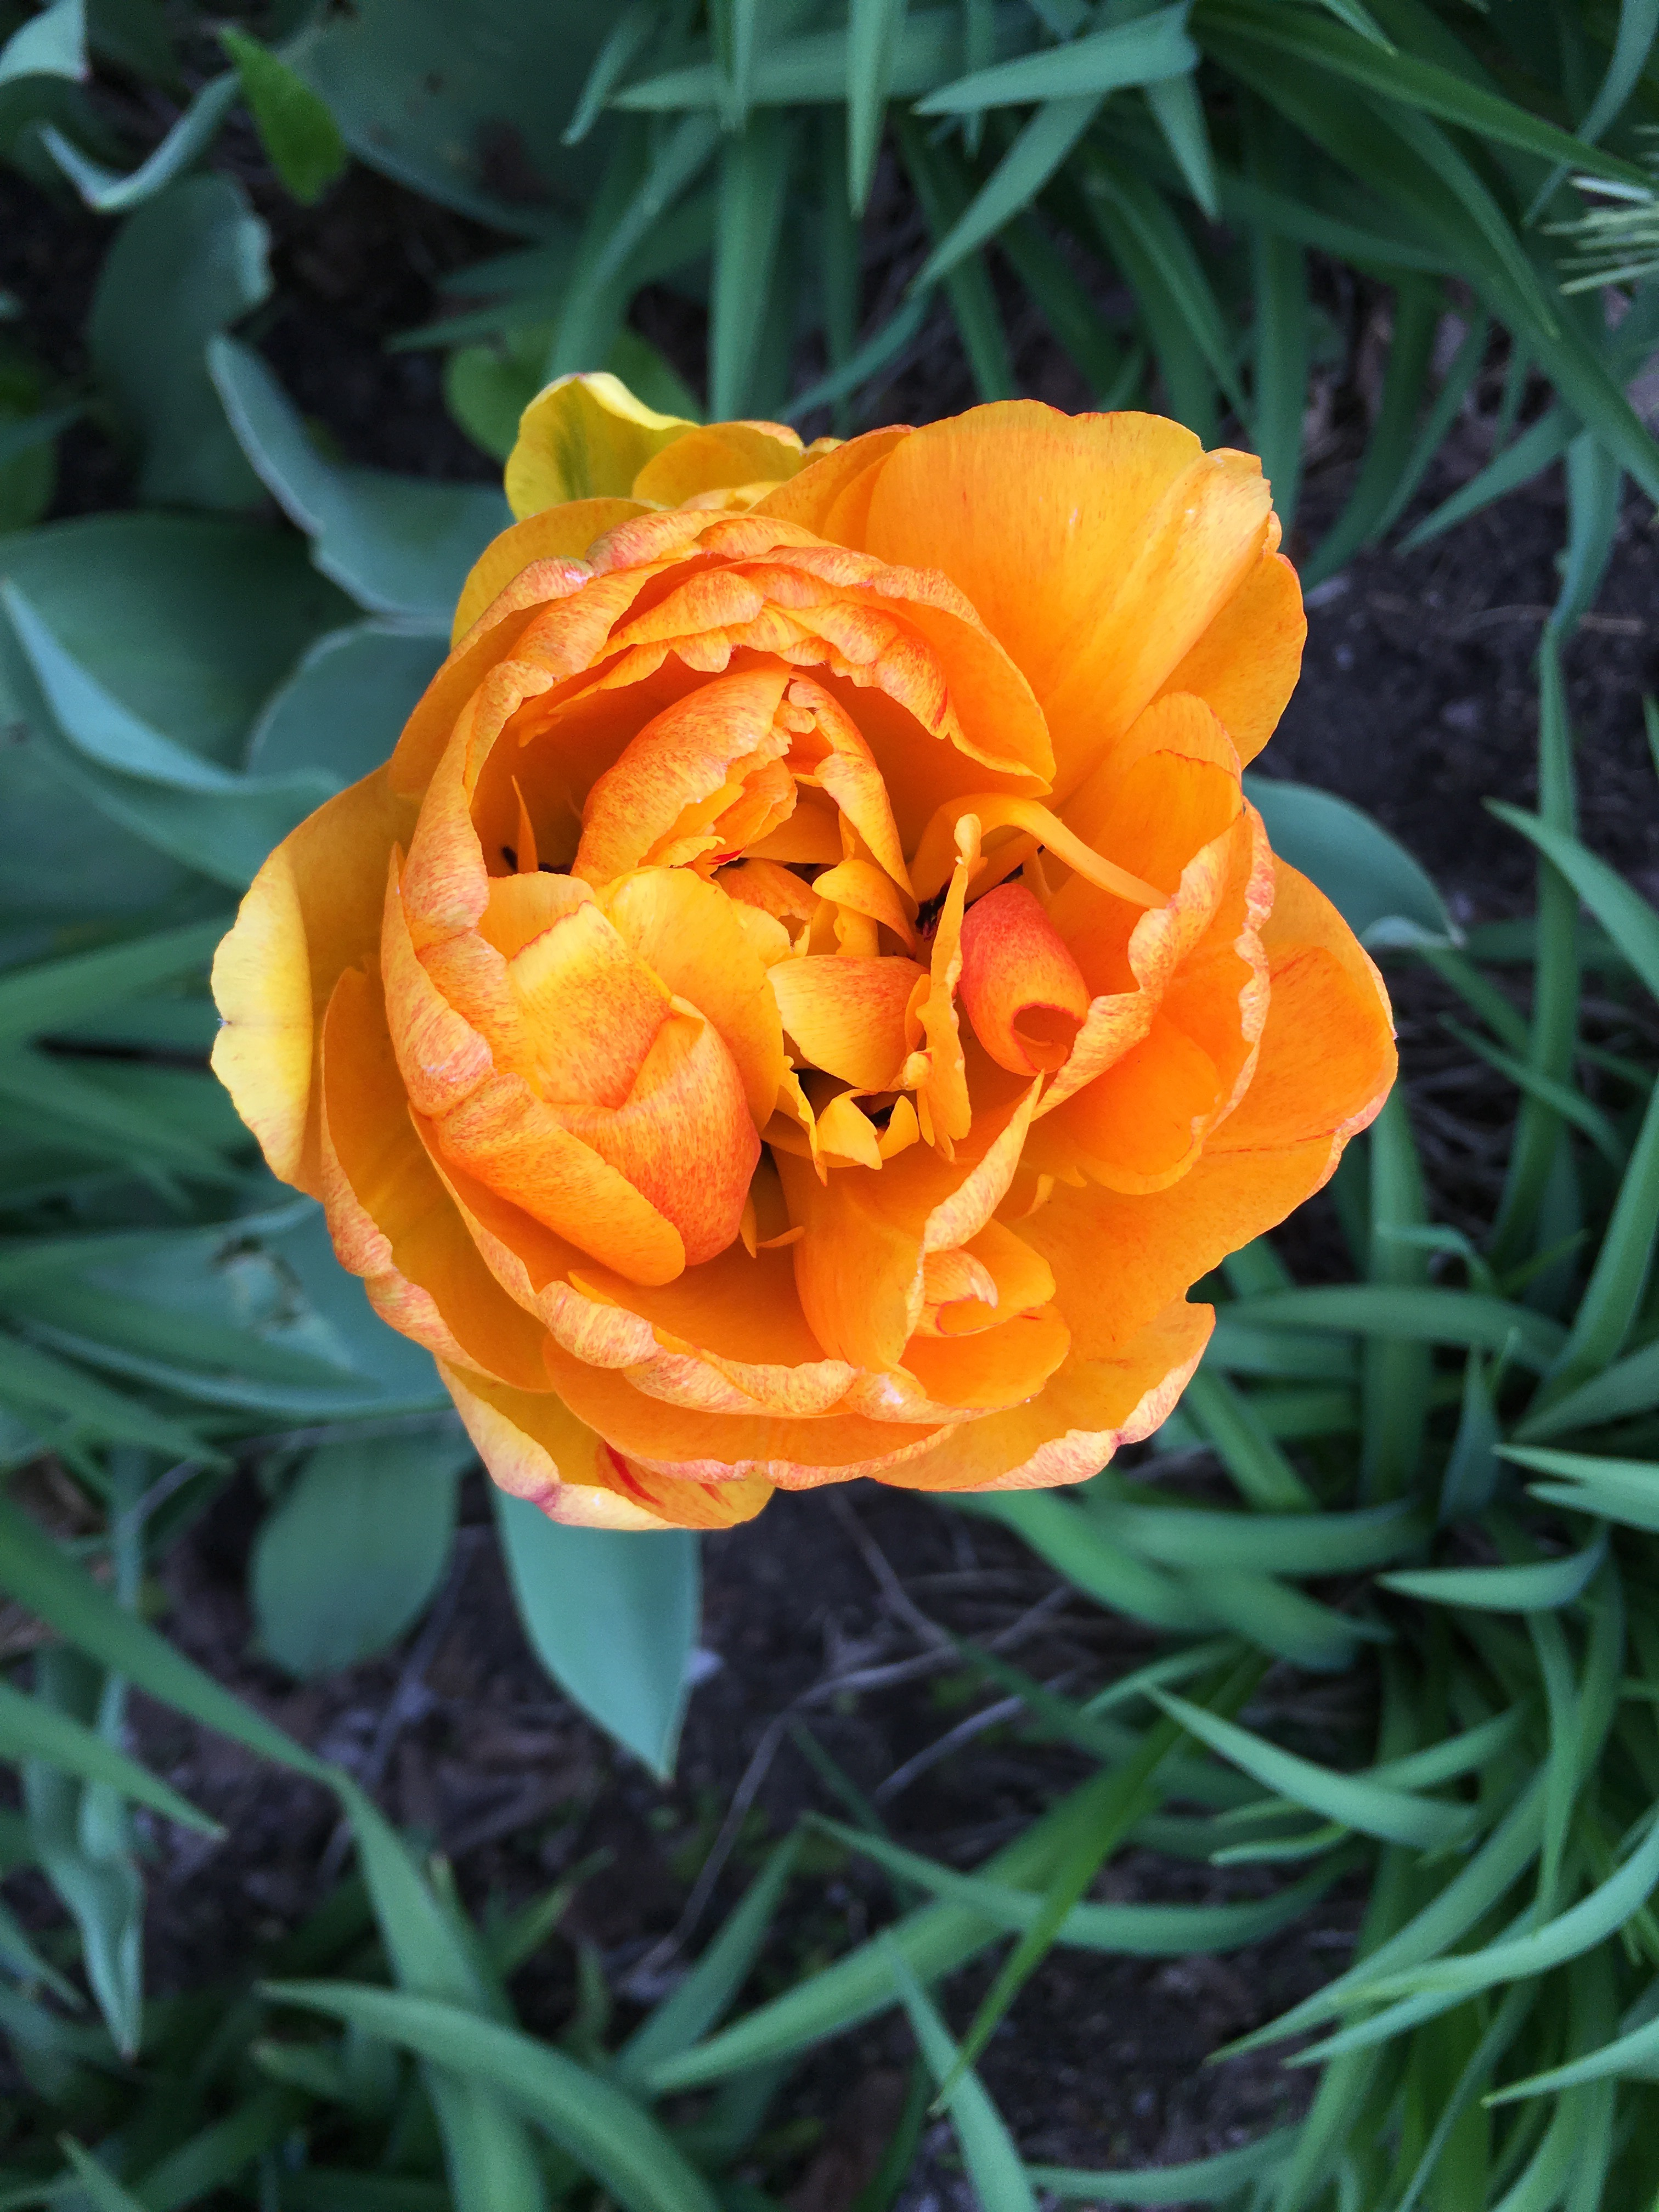 Orange tulip bloom in spring with green background